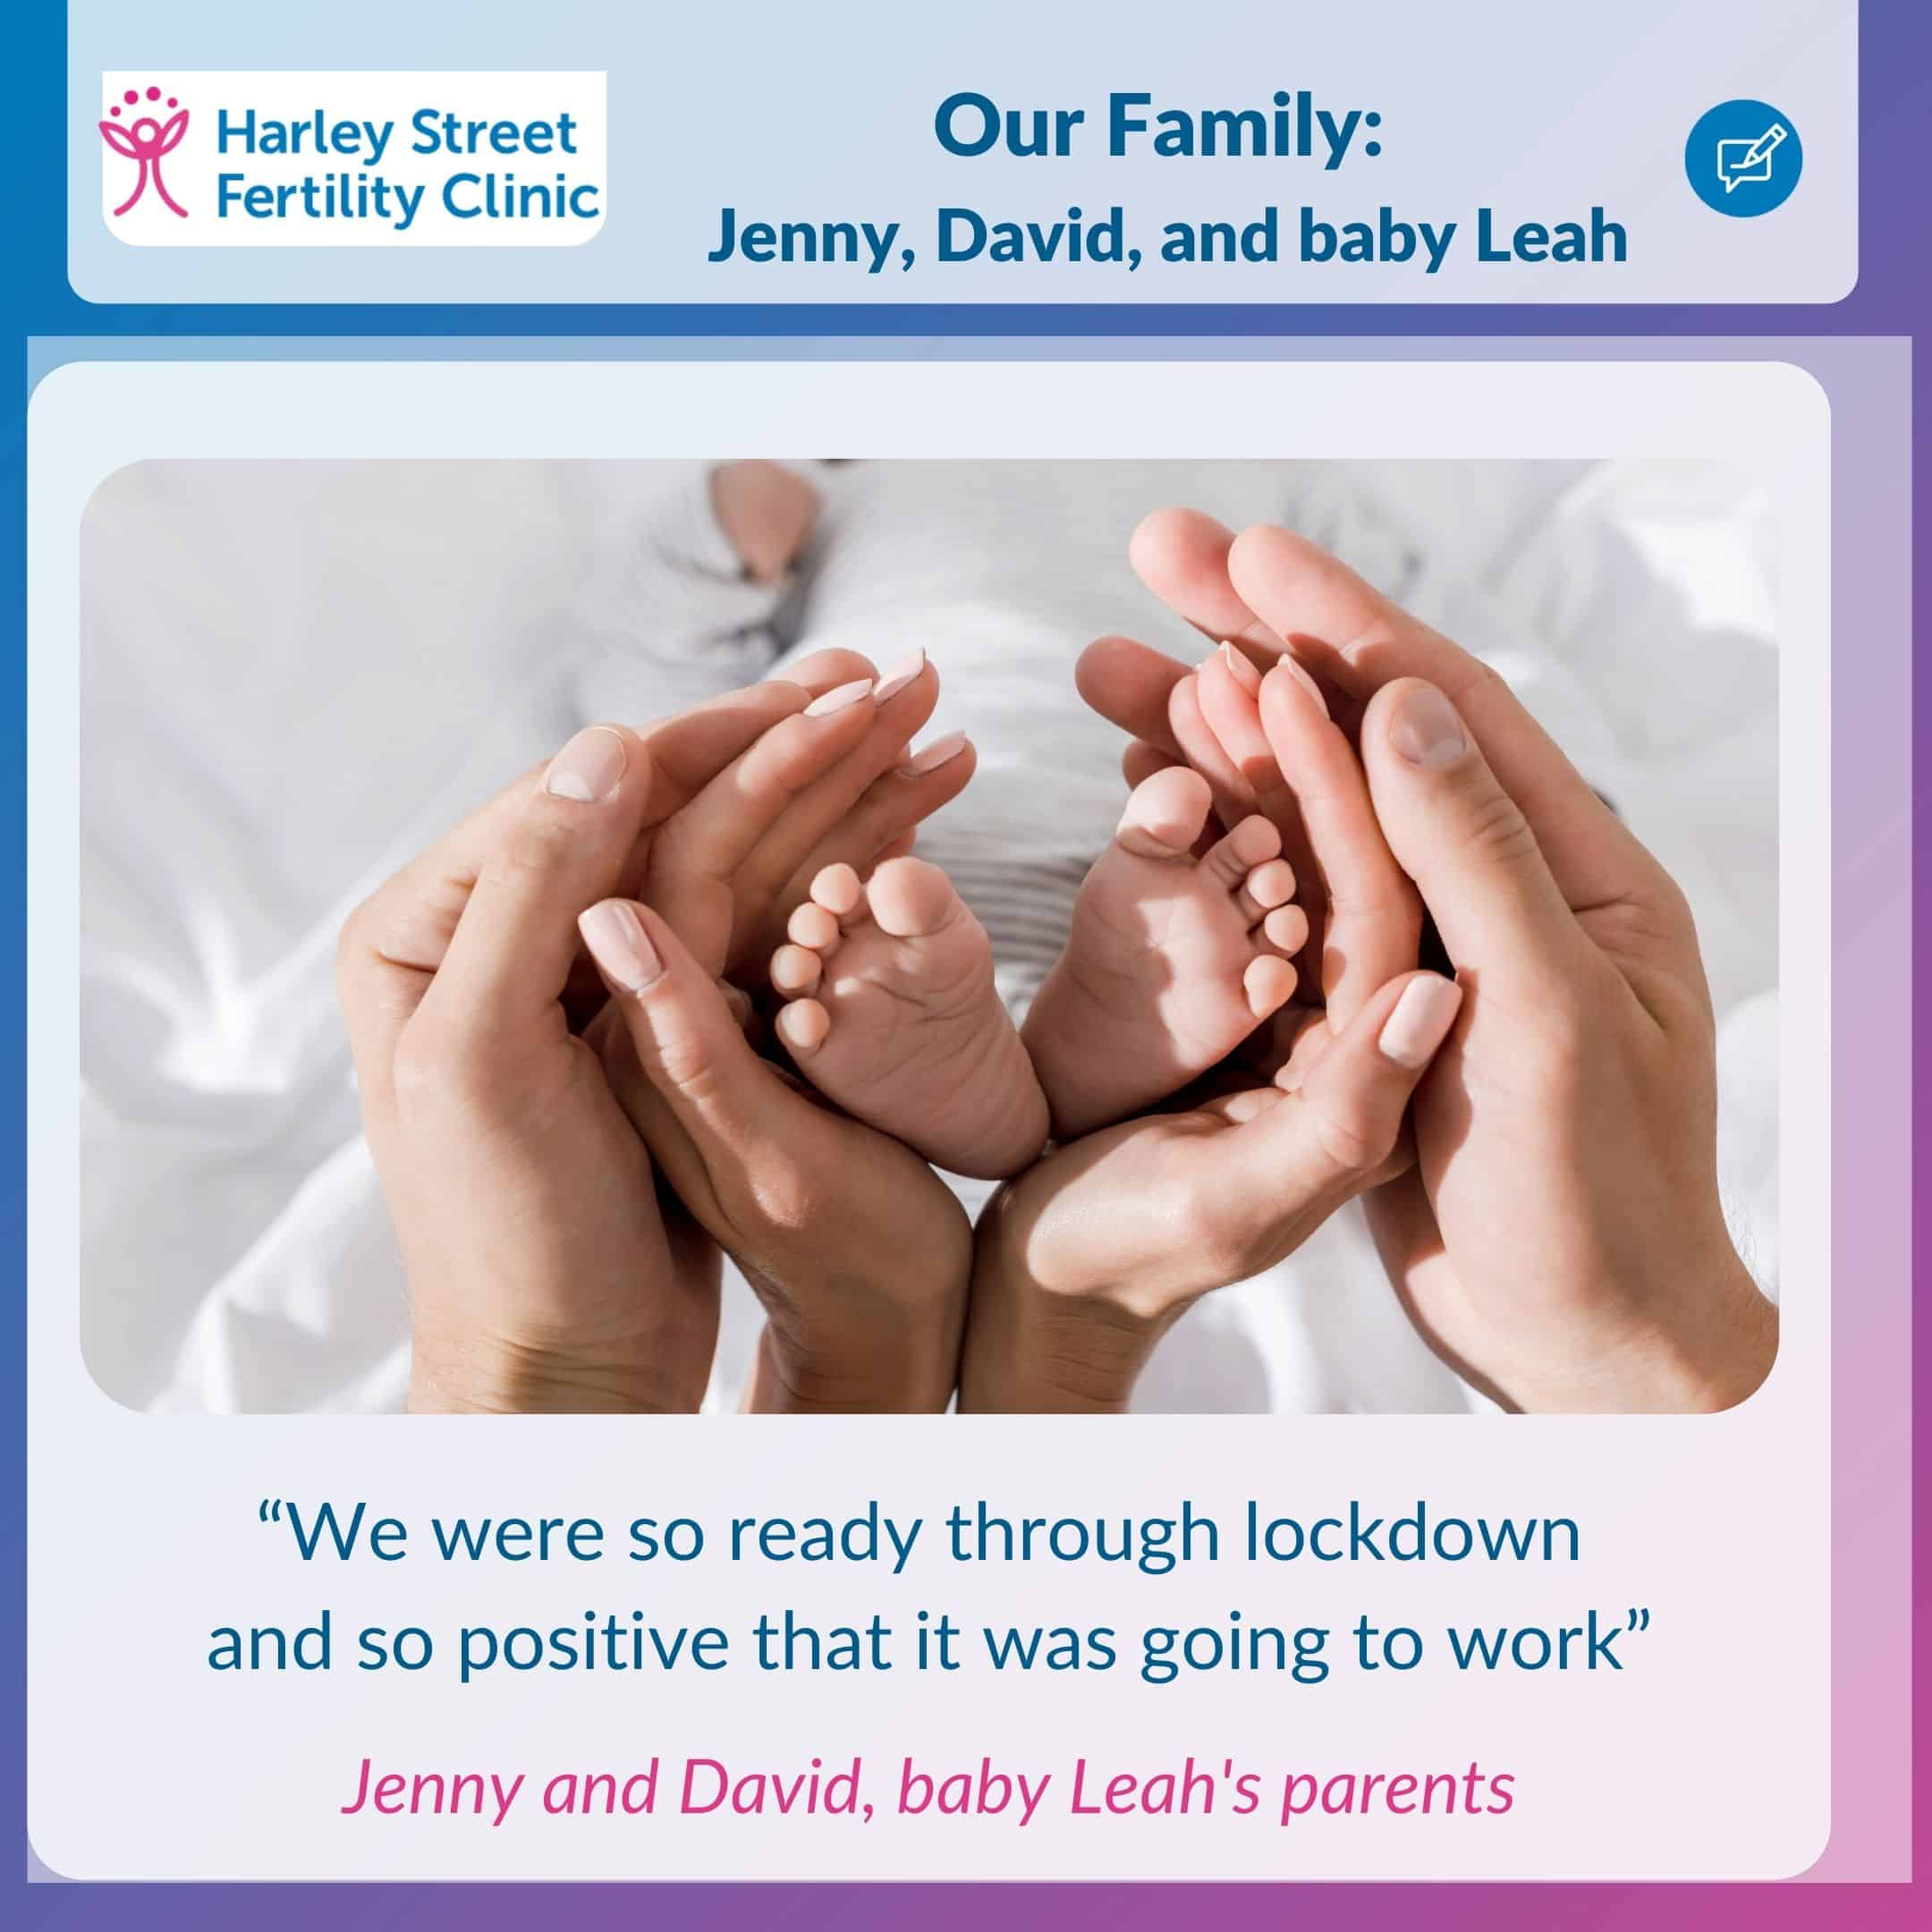 Our family: Jenny, David and baby Leah